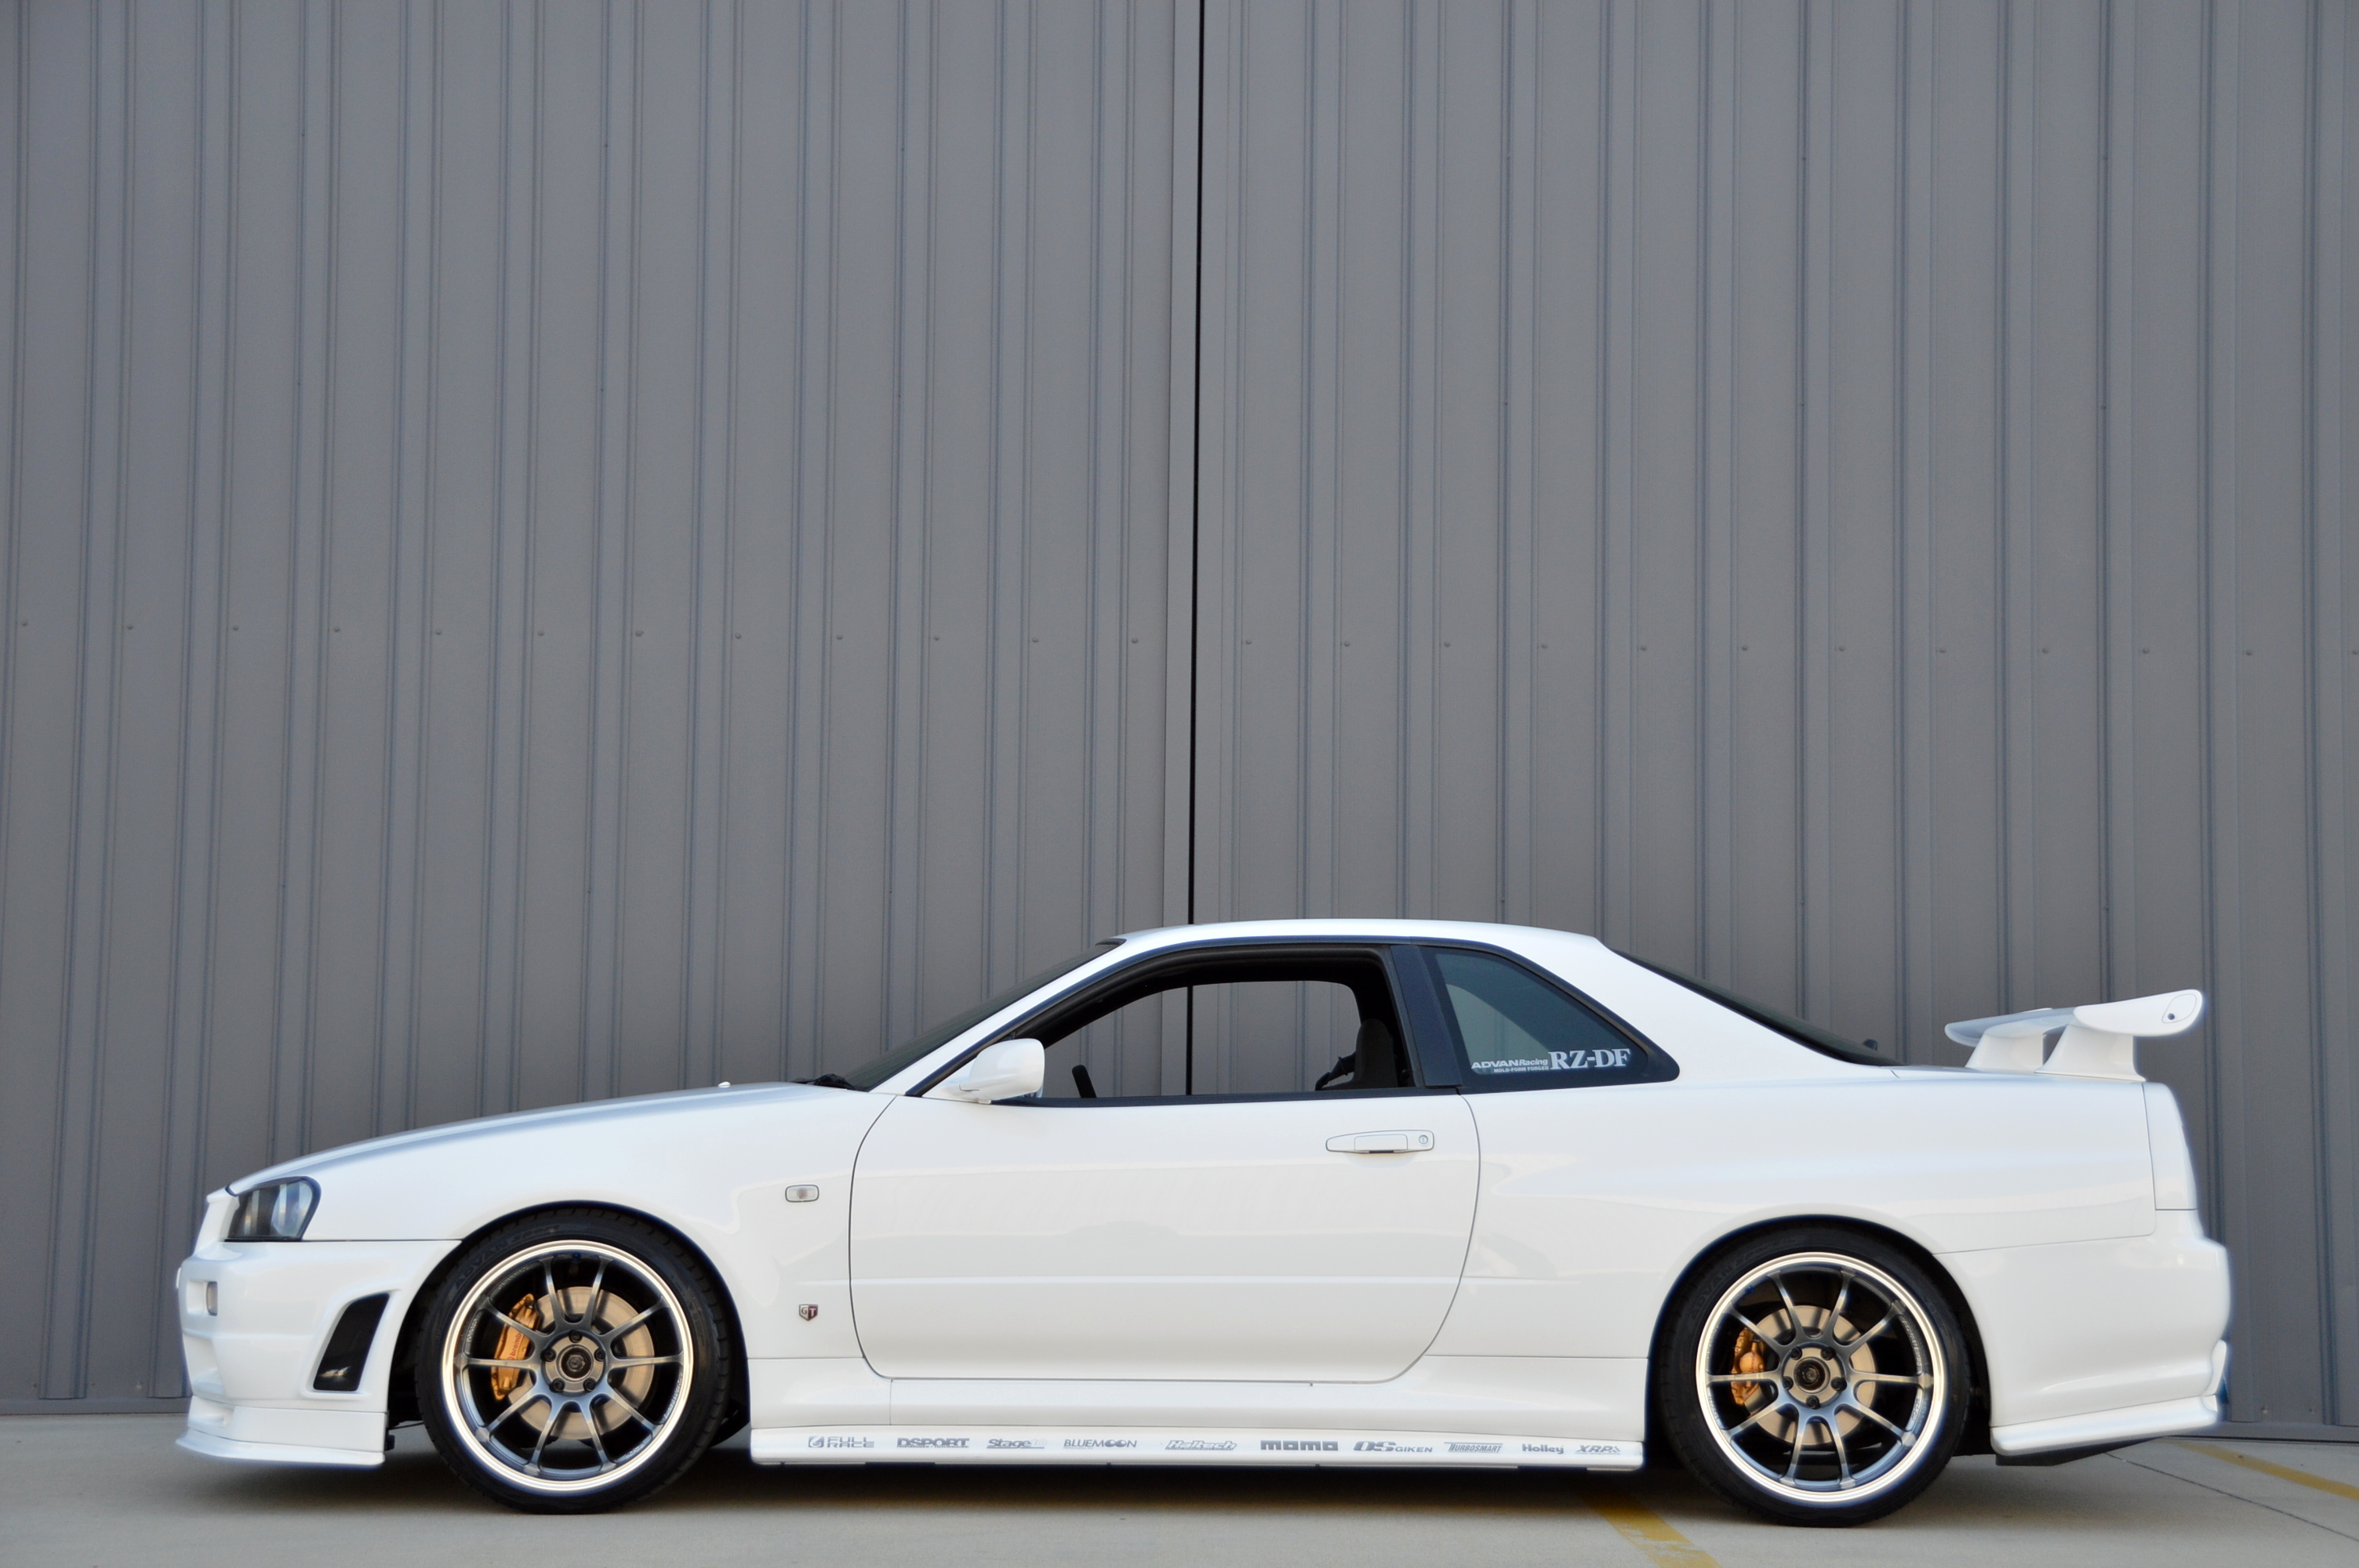 US Legal Nissan Skyline GT-R R34 Not a Trap, buy this one and be on the legal Team